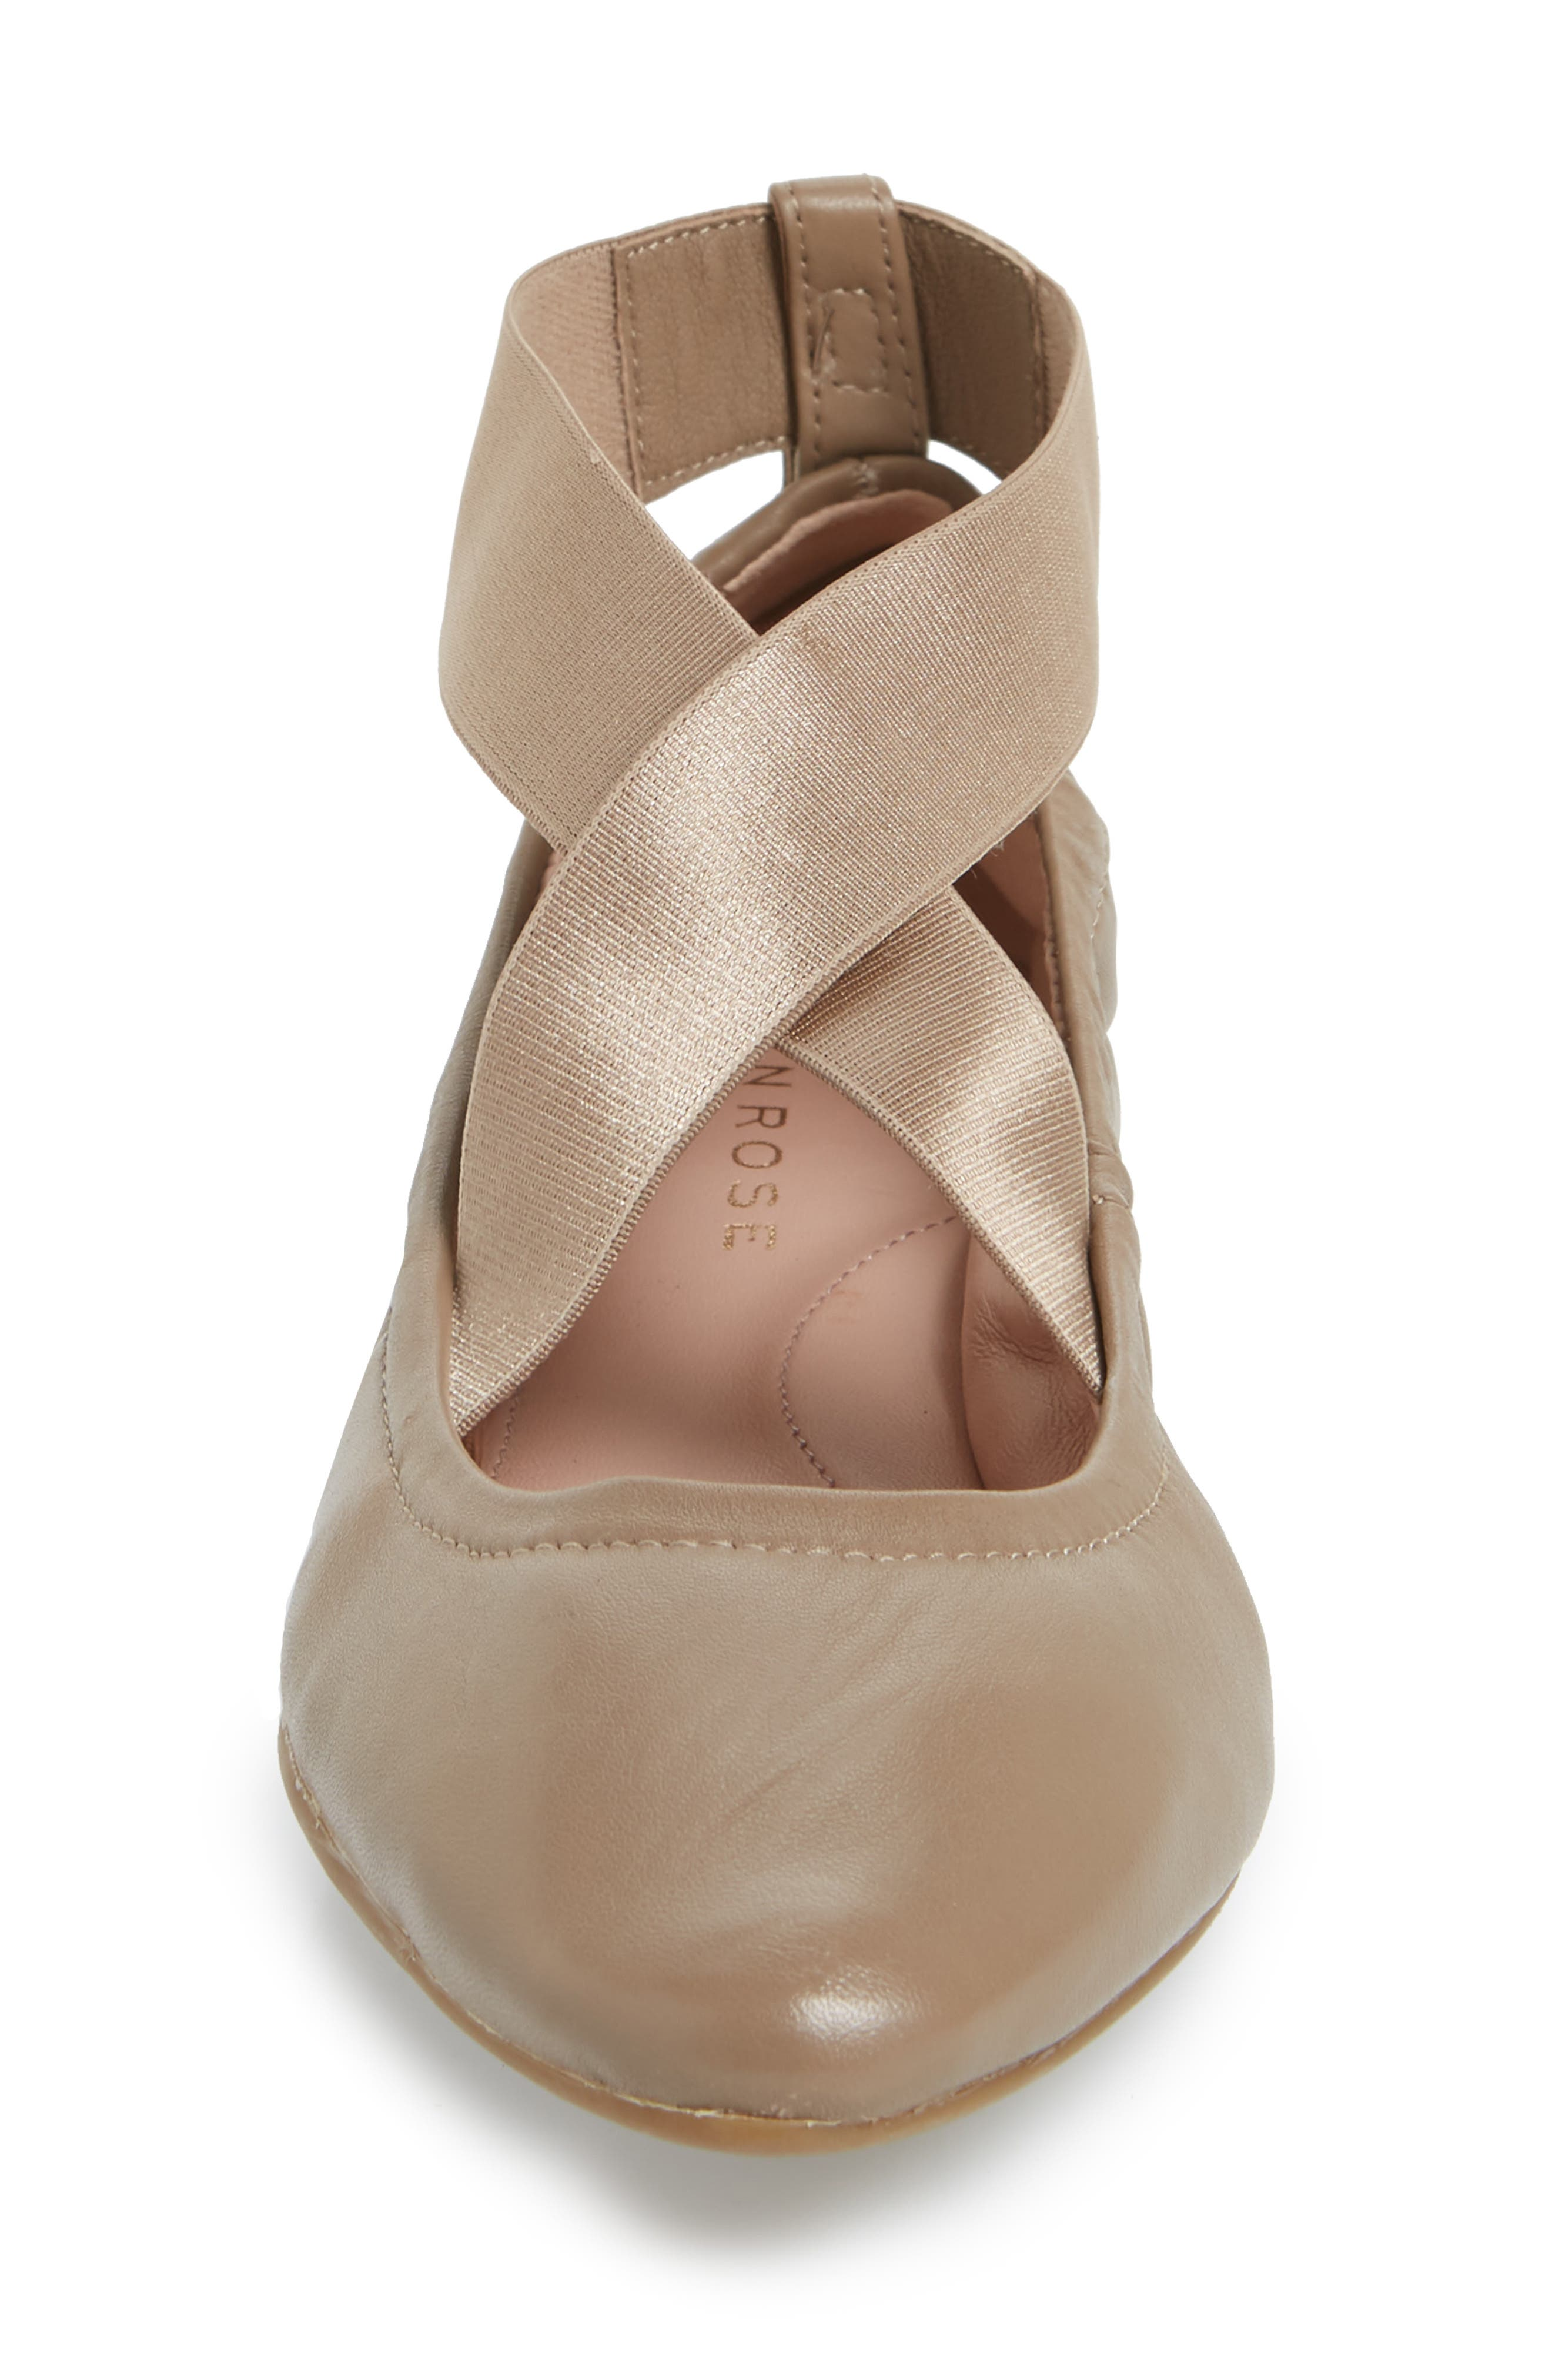 Edina Strappy Ballet Flat,                             Alternate thumbnail 4, color,                             260